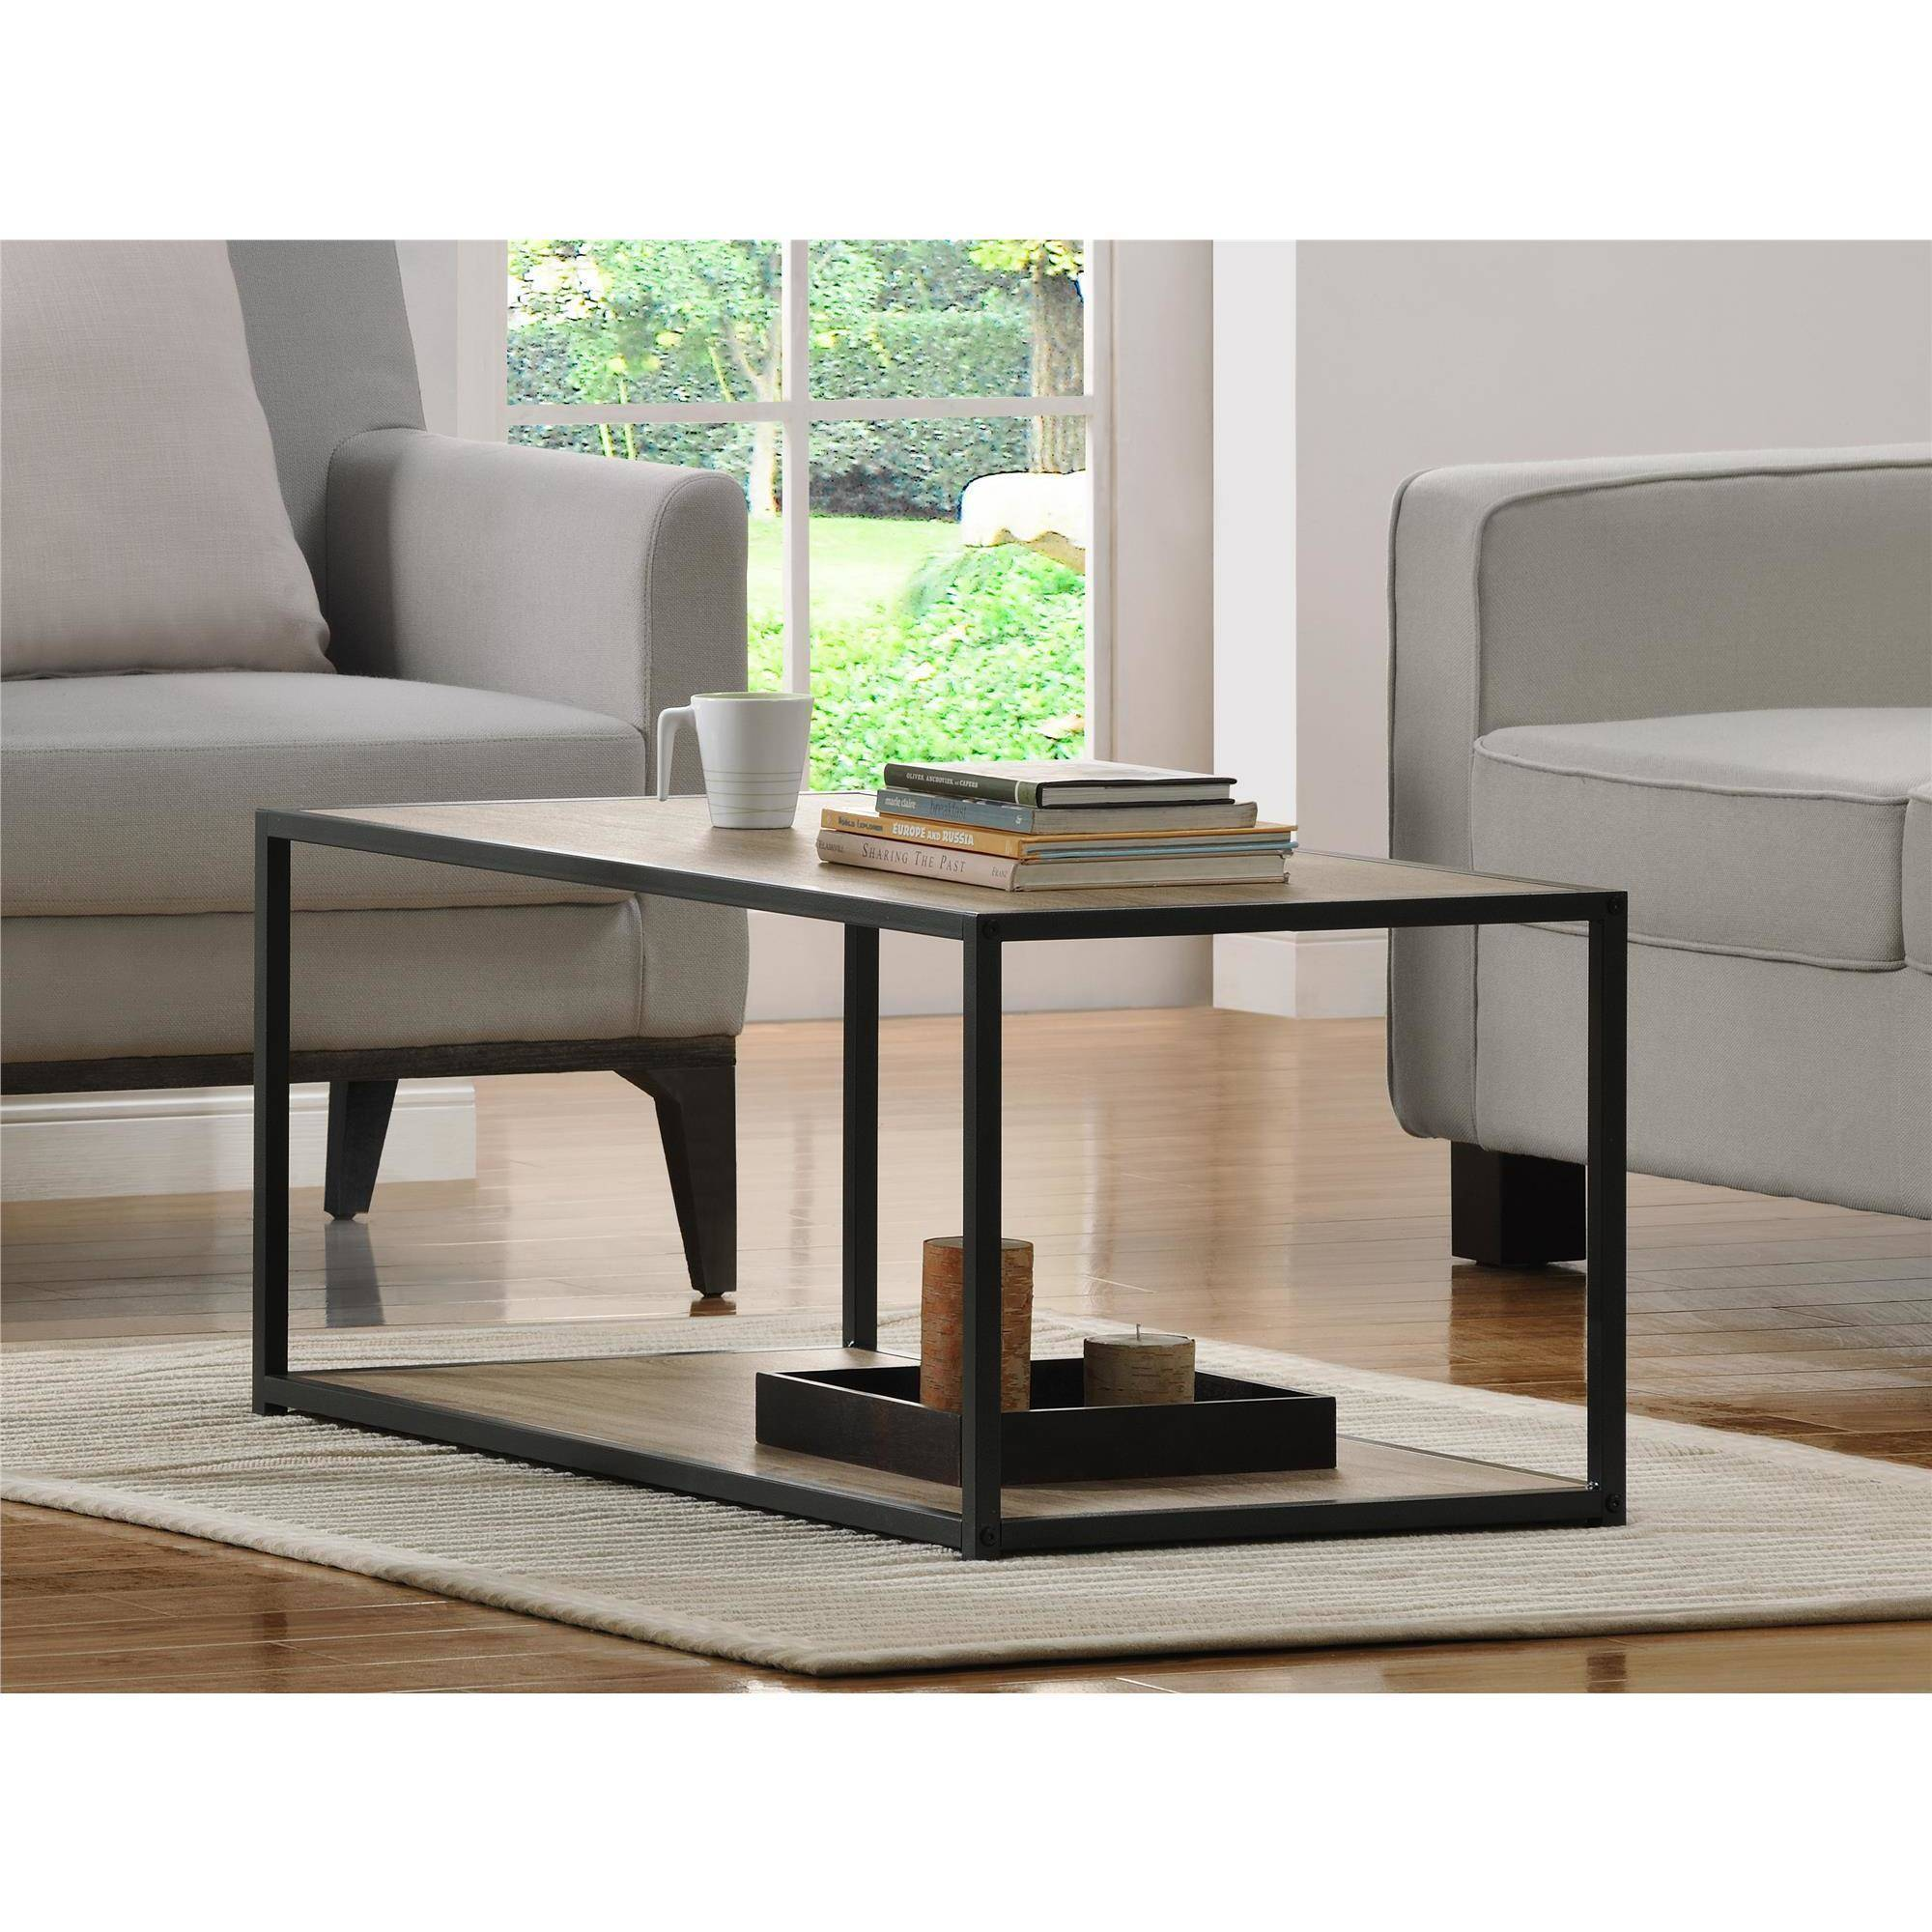 Mason Ridge Coffee Table with Metal Frame